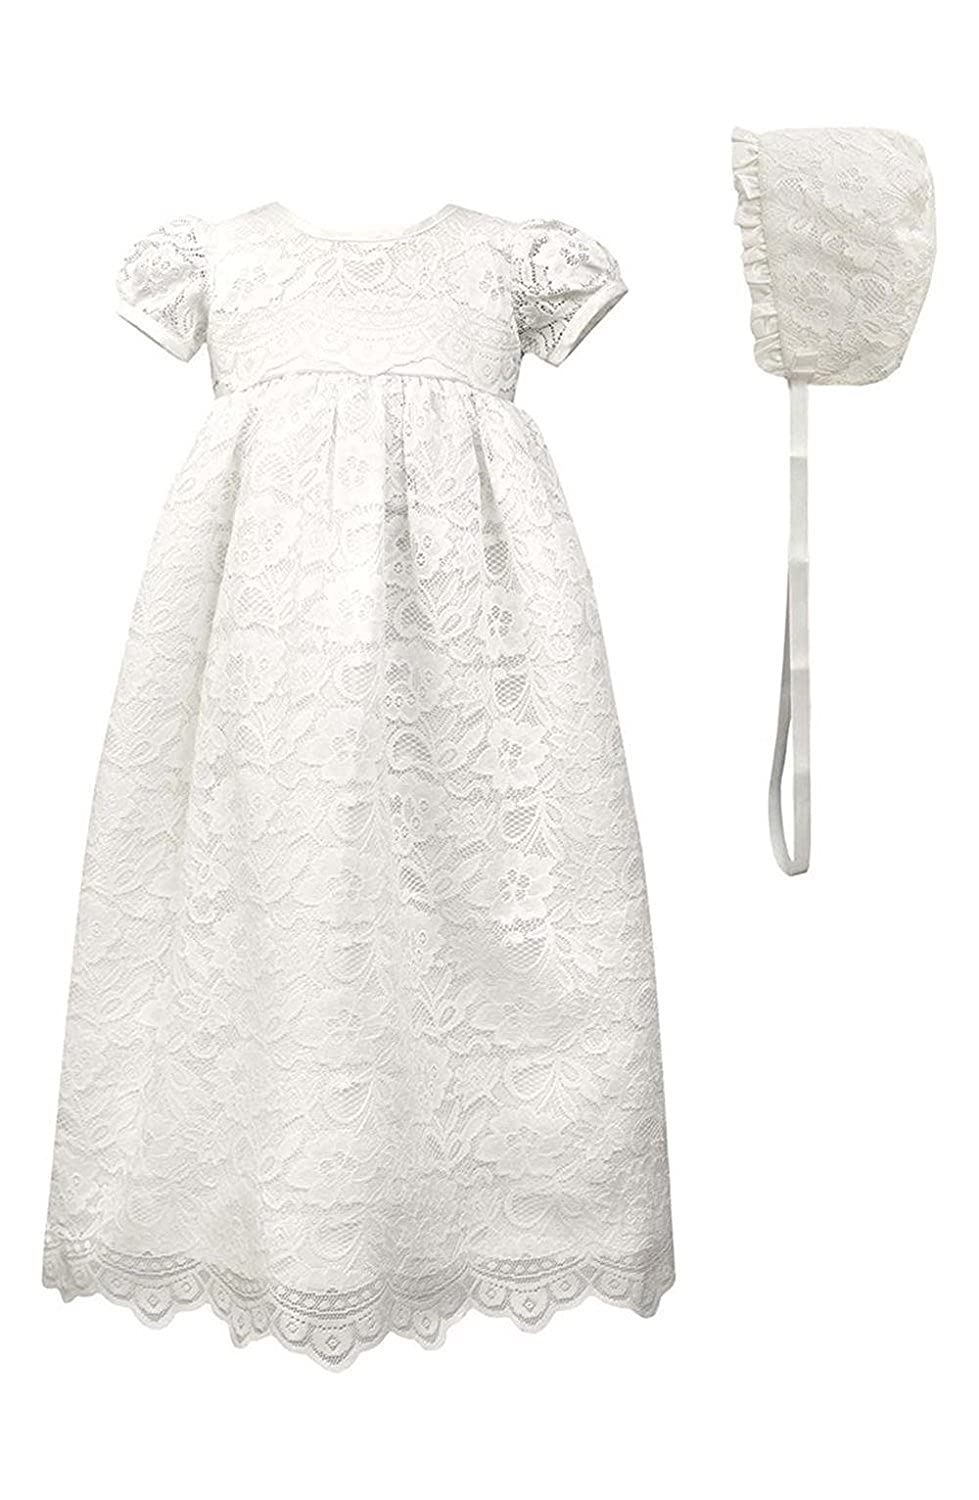 New Deve Newdeve Lace Christening Gowns For Baby Girls Baptism Dresses With Lace Bonnet